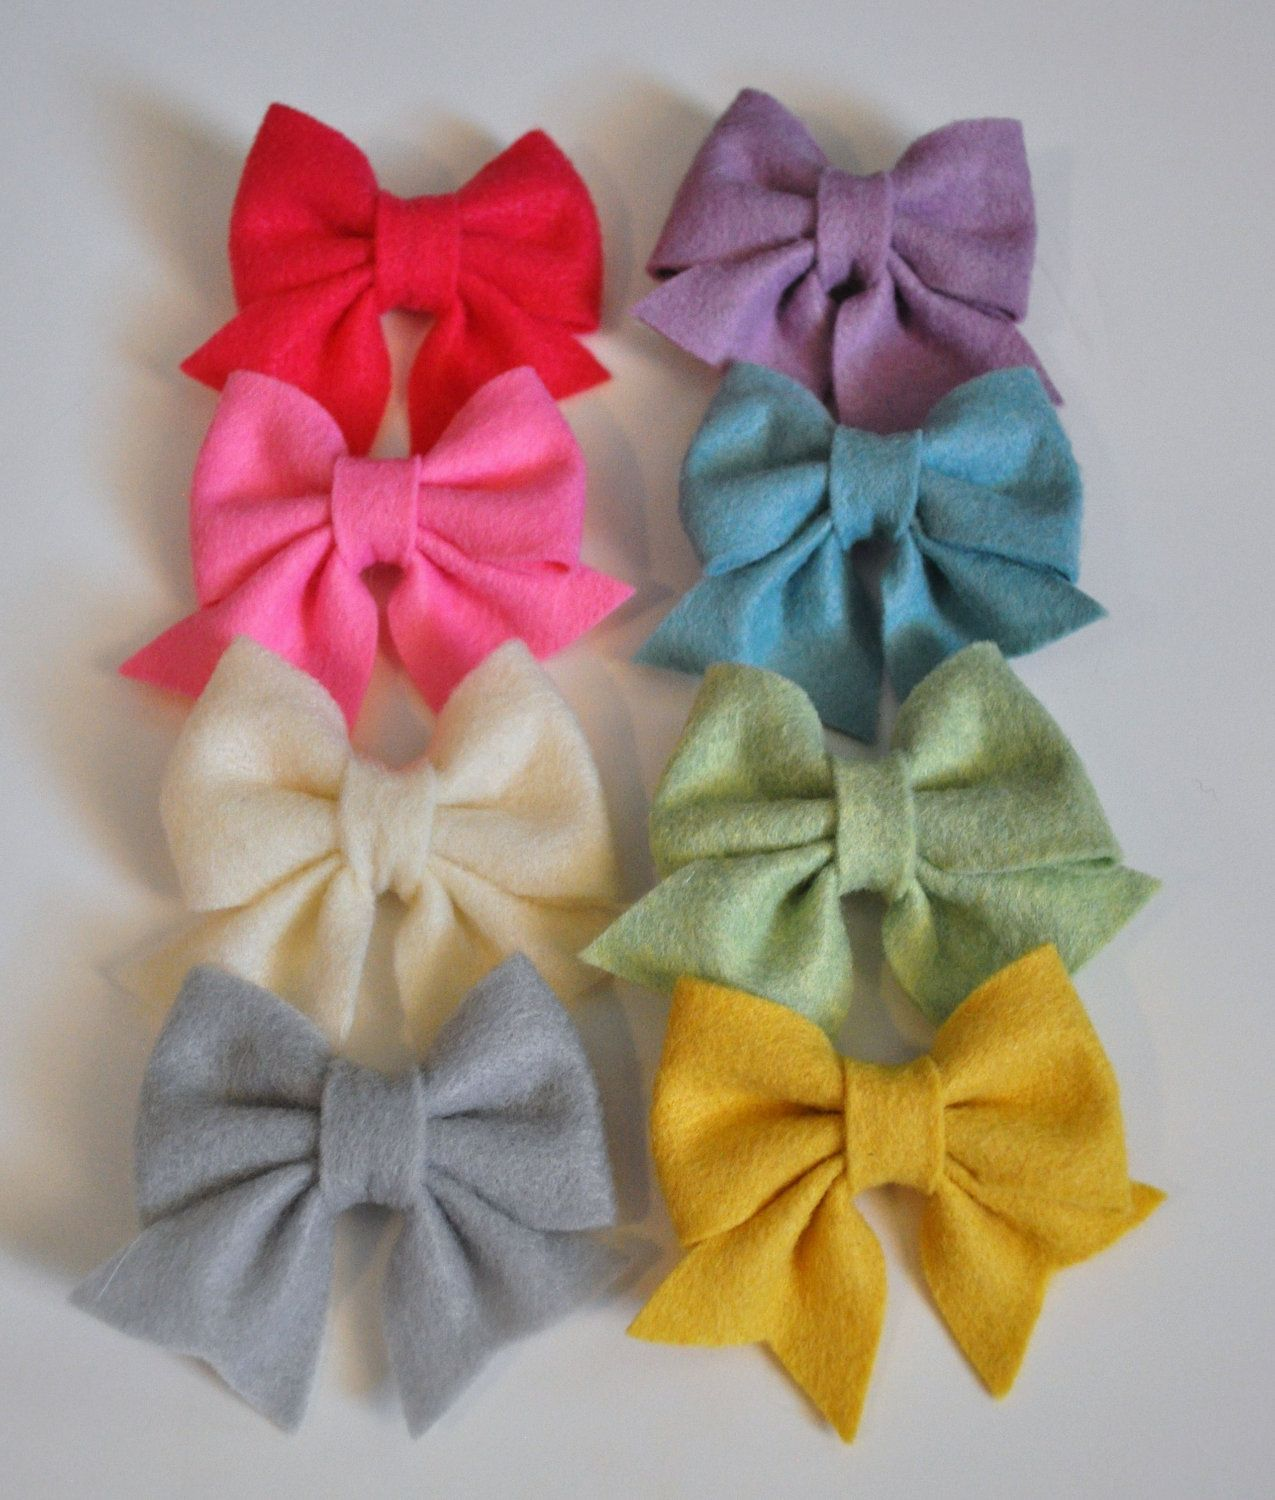 Felt bow tie pattern tutorial with printable templates 3 for Felt bow tie template